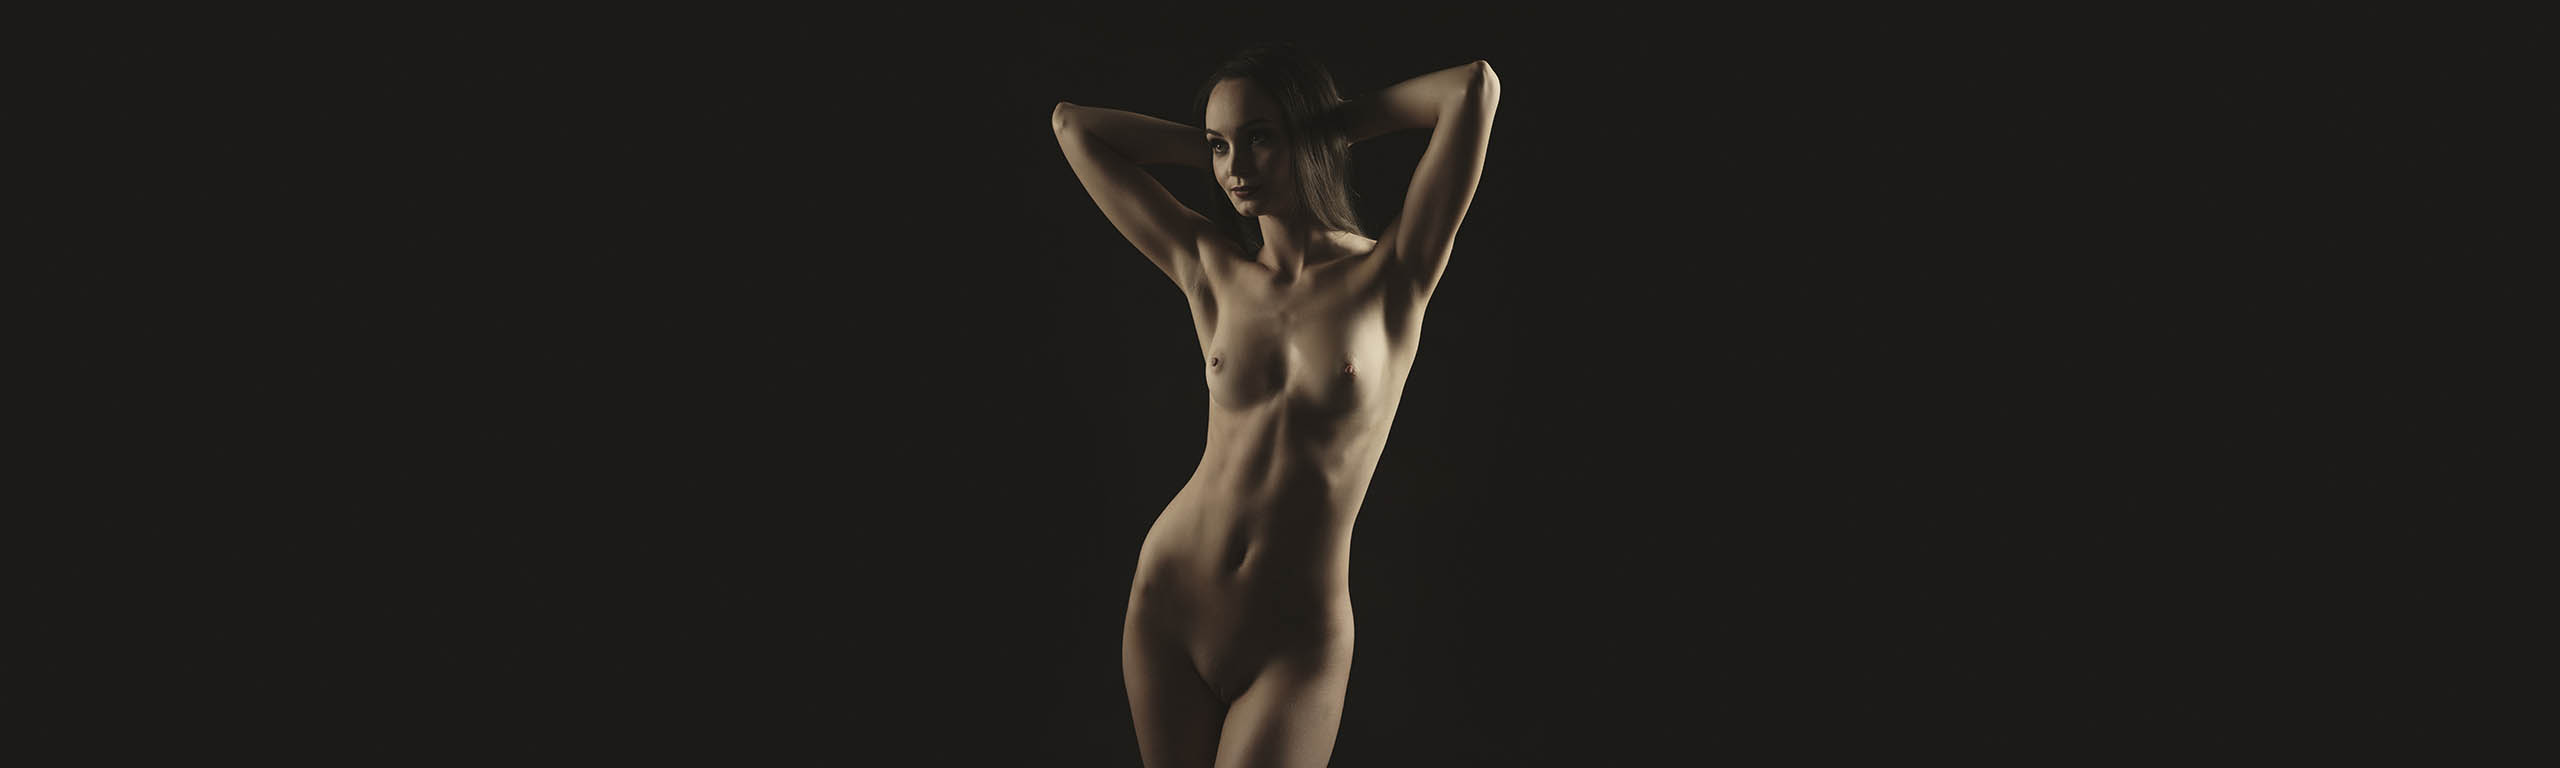 Nude photography of woman standing